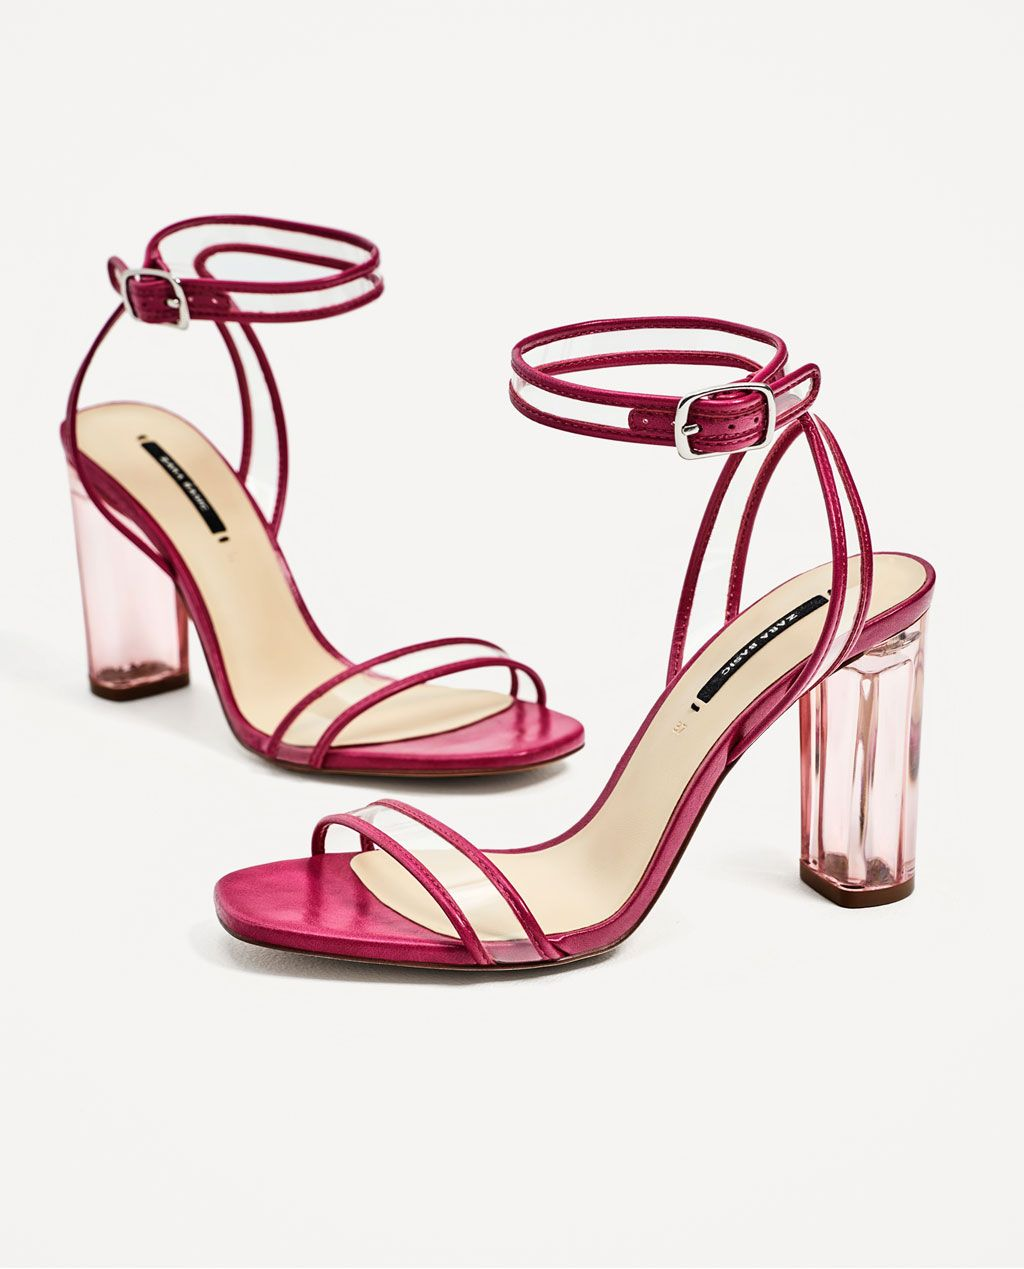 52f7e6ac6e7 VINYL HIGH HEEL SANDALS from Zara